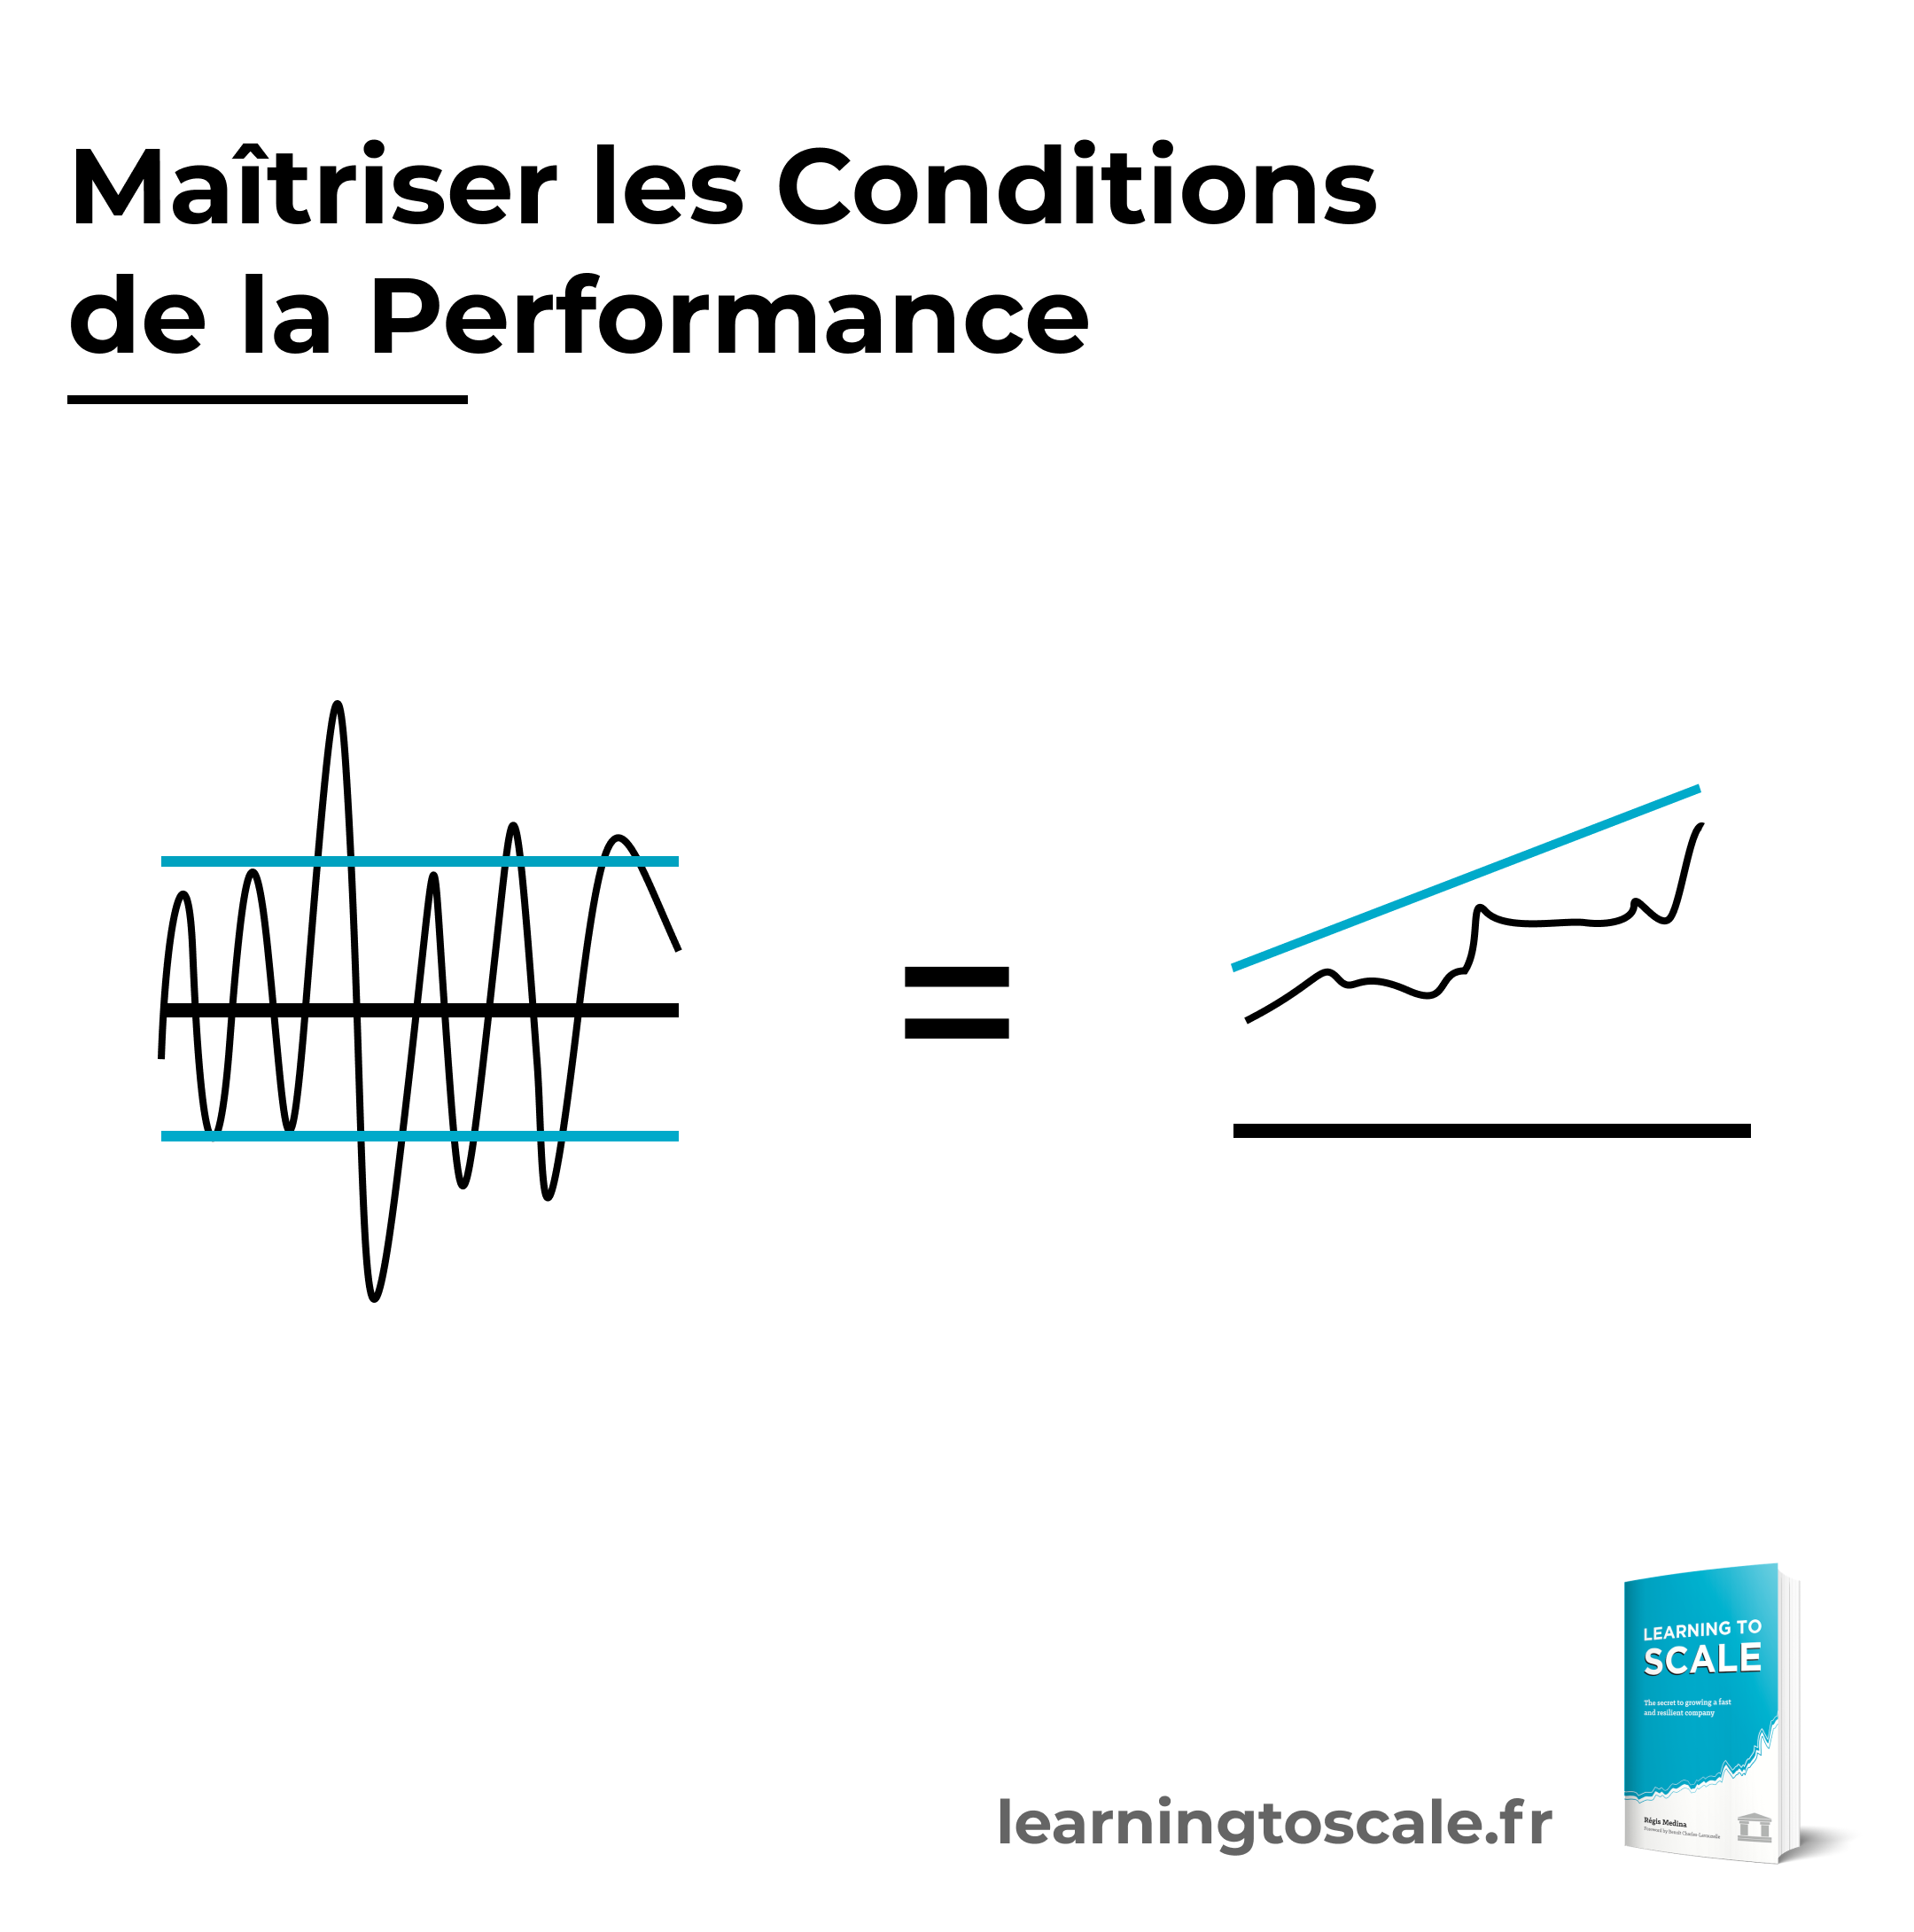 Maîtriser les conditions de la performance